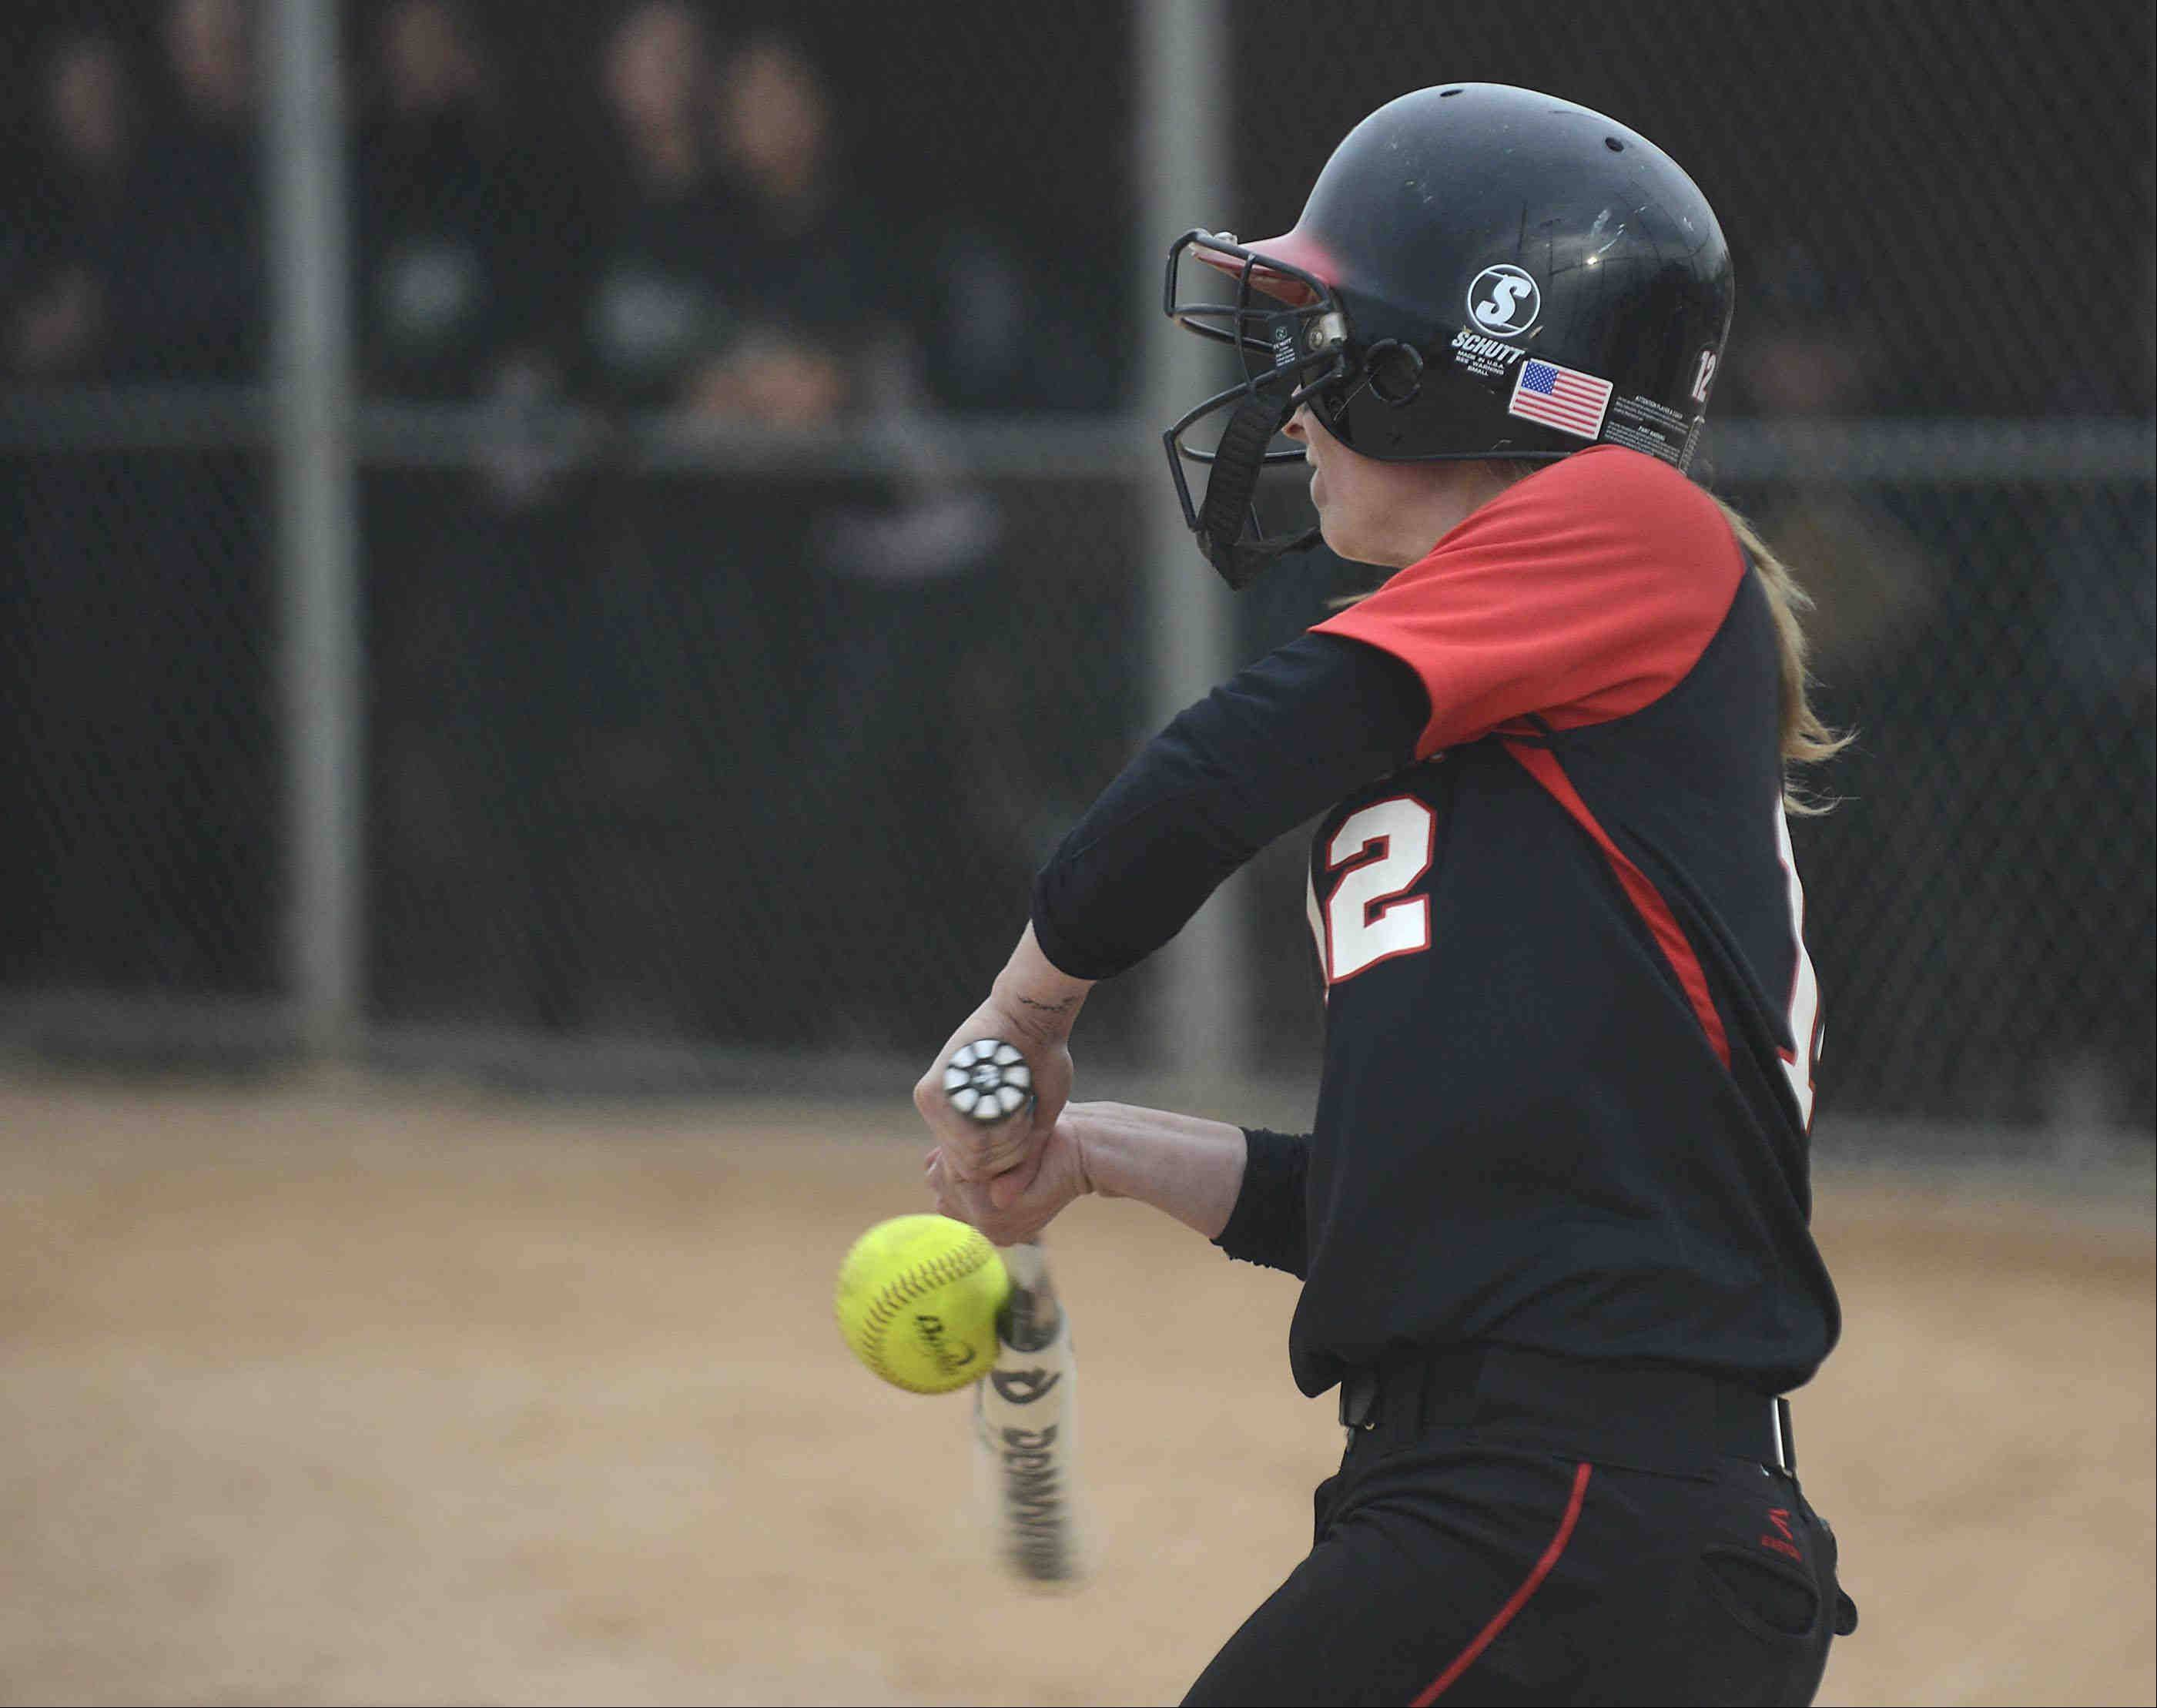 Barrington's Loren Krzysko connects on an inside fastball to load the bases in the seventh inning against Fremd on Monday.